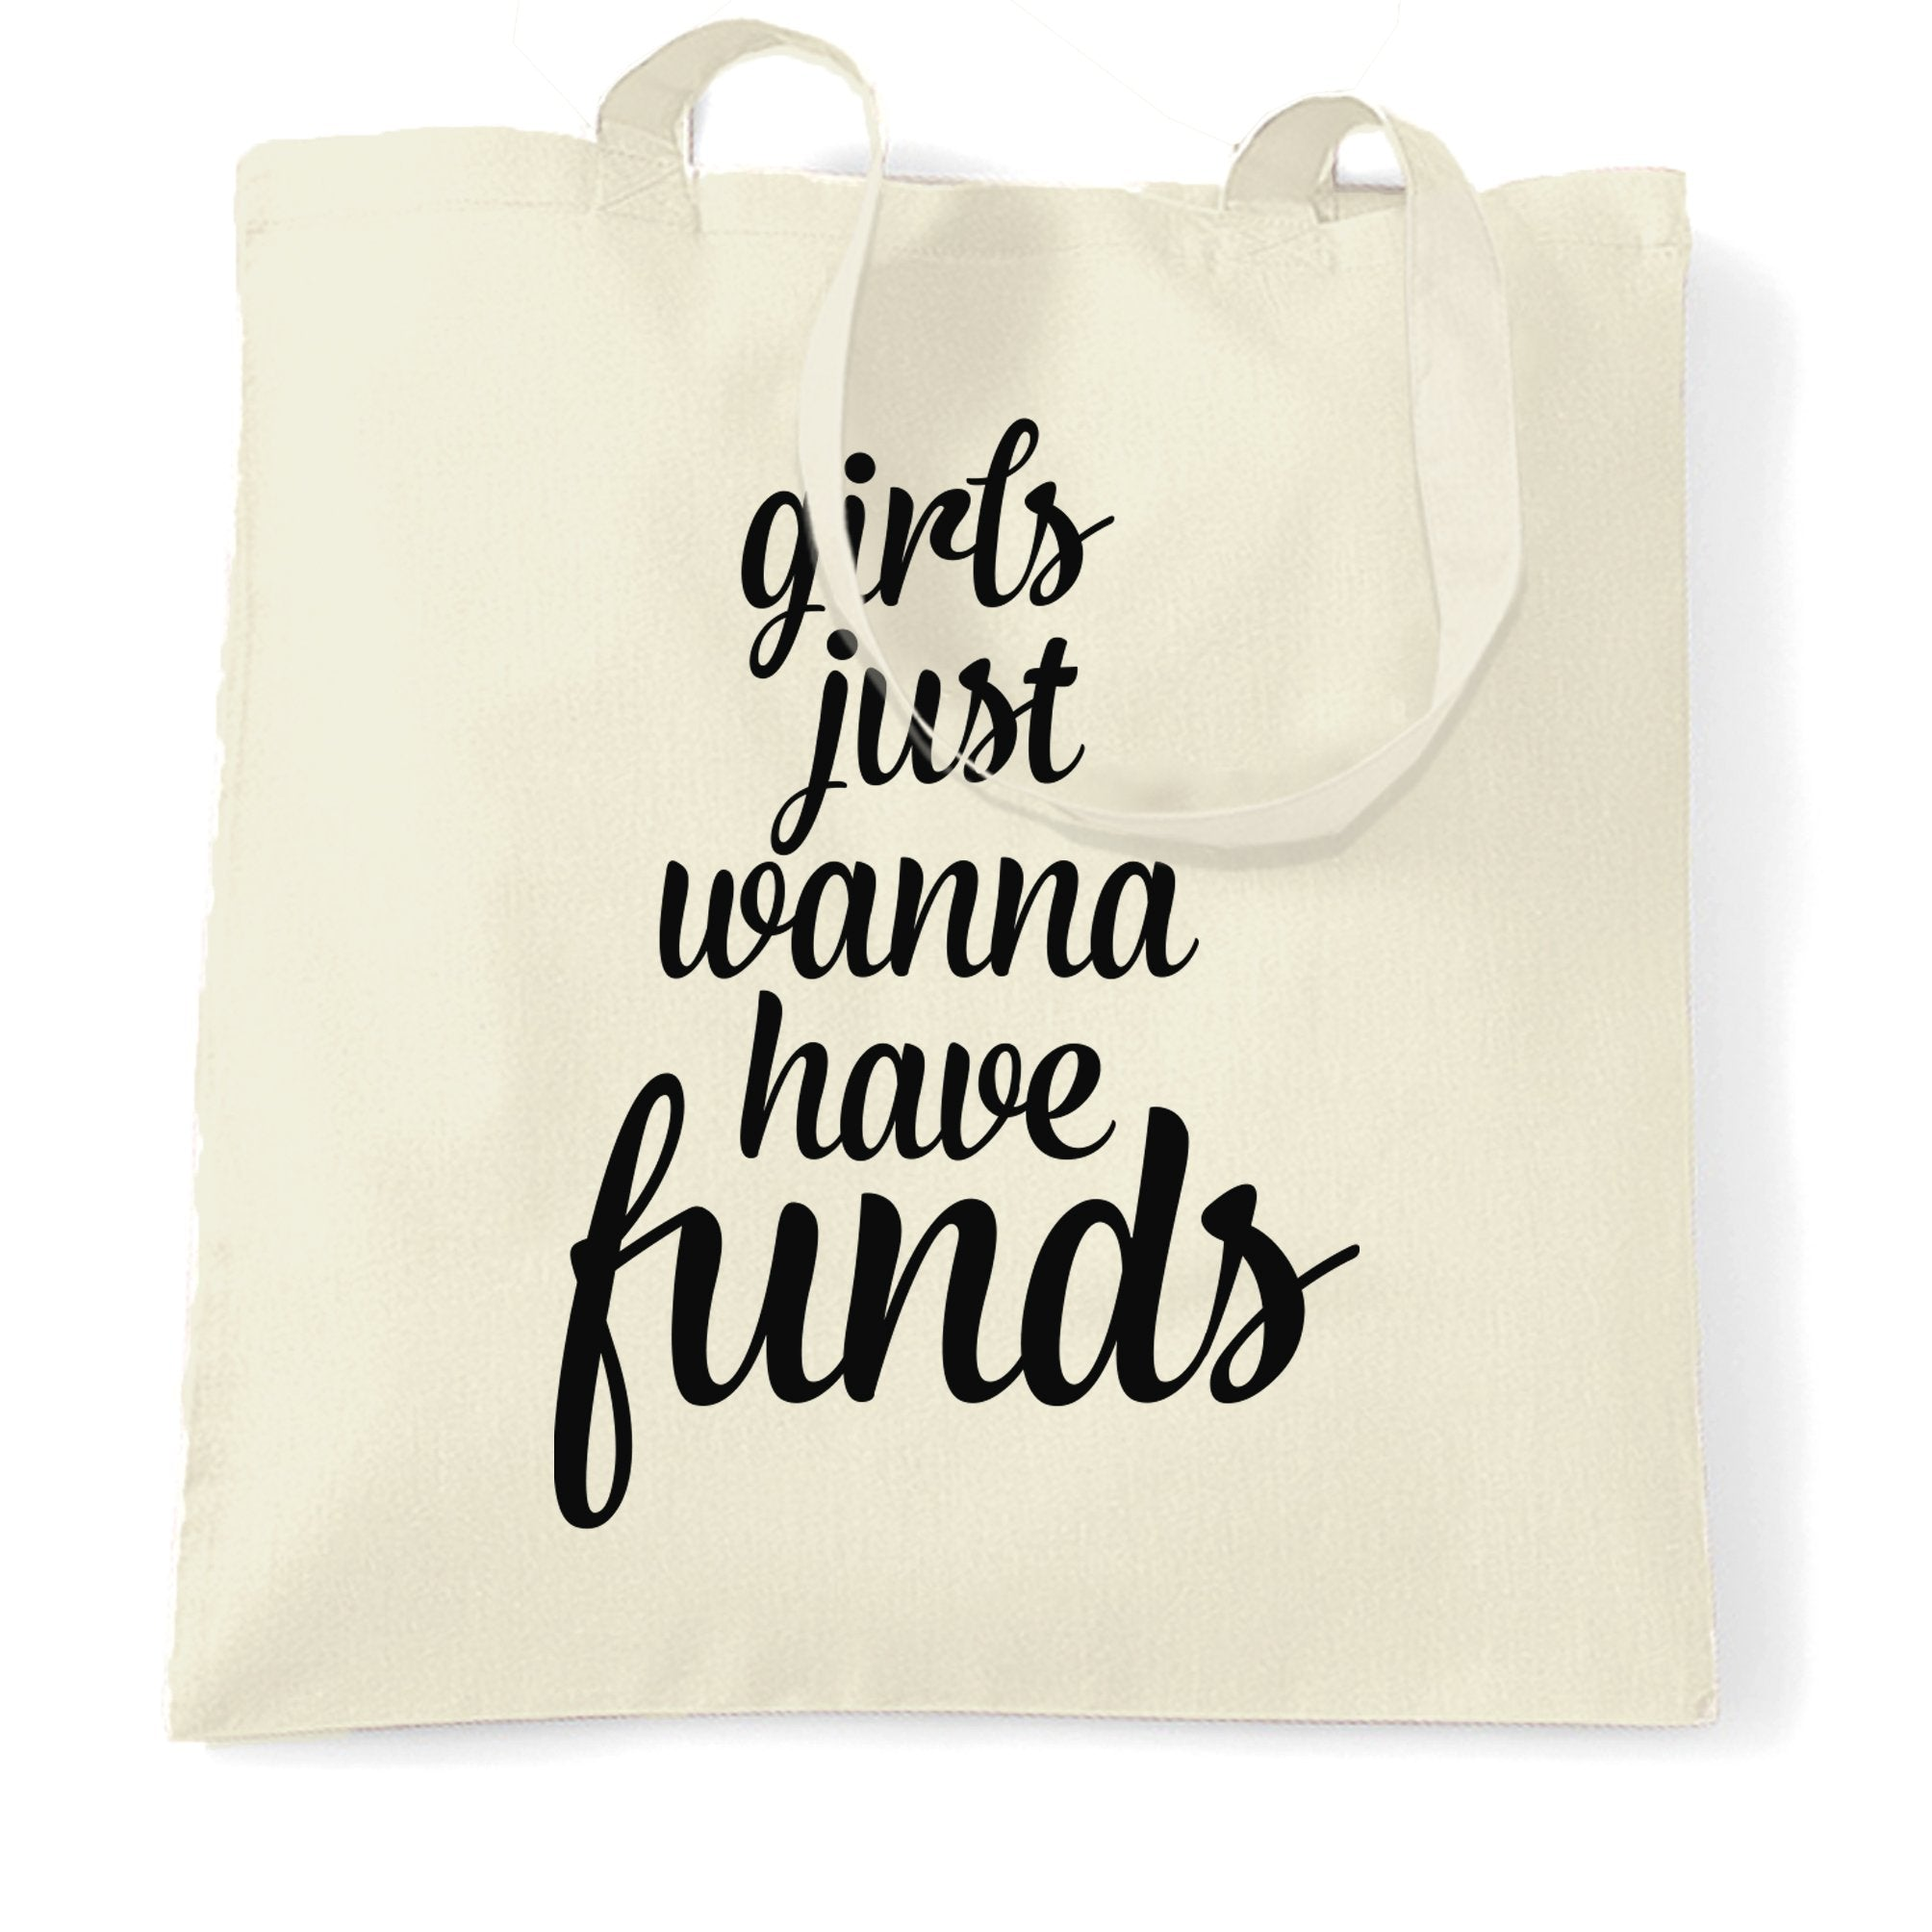 Novelty Tote Bag Girls Just Wanna Have Funds Pun